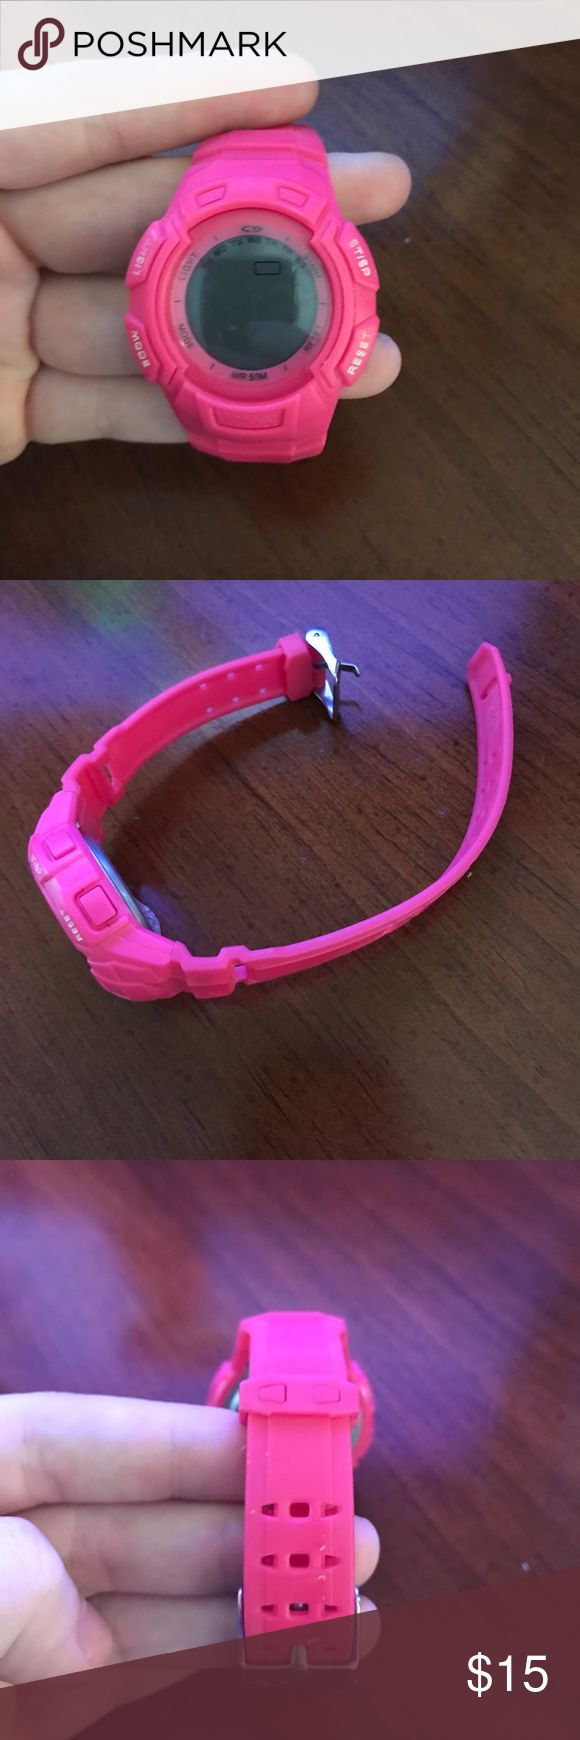 ⭕️FINAL SALE⭕️Pink Champion Watch EUC. Does need a new battery (takes a lithium battery)! Has many features including, a stopwatch, date, water proof, and setting alarms. Plastic band! Adjustable to fit about any wrist size. If you have any questions or need additional pictures, please let me know! 🤗 Champion Accessories Watches